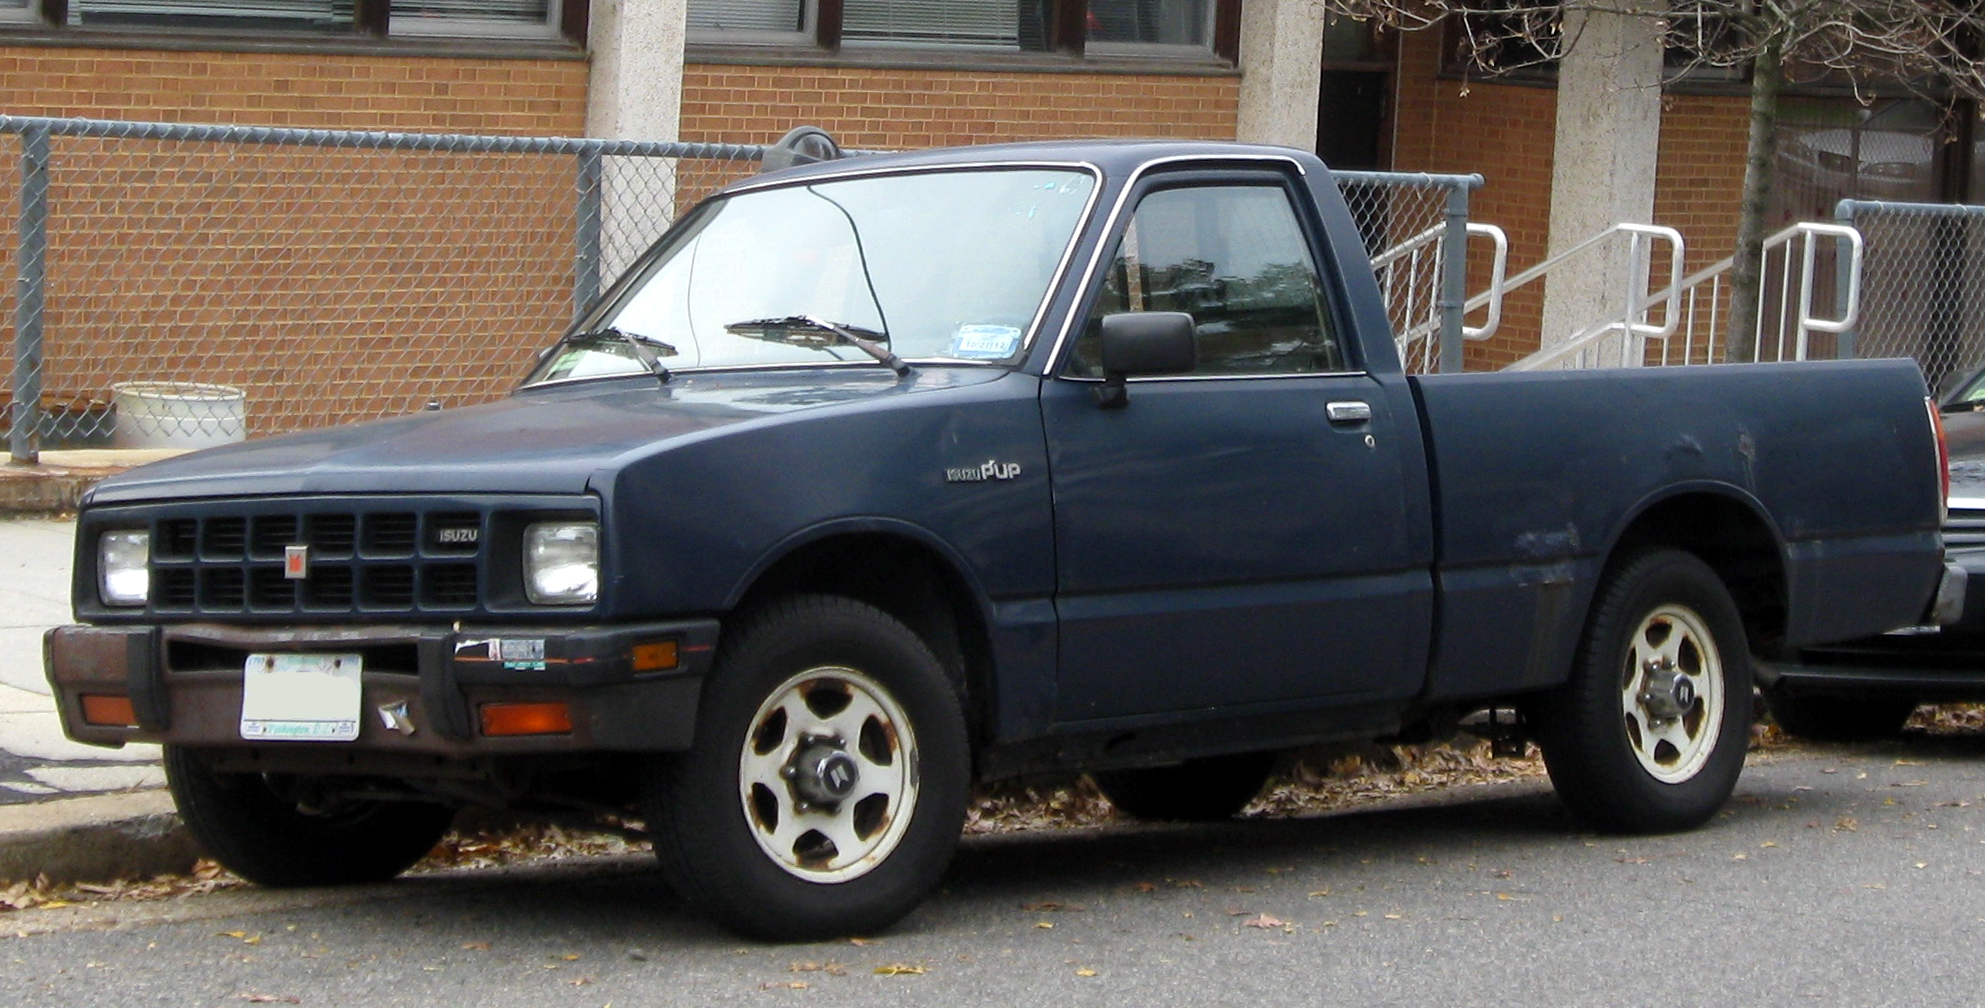 Isuzu P'up -- 11-20-2011.jpg